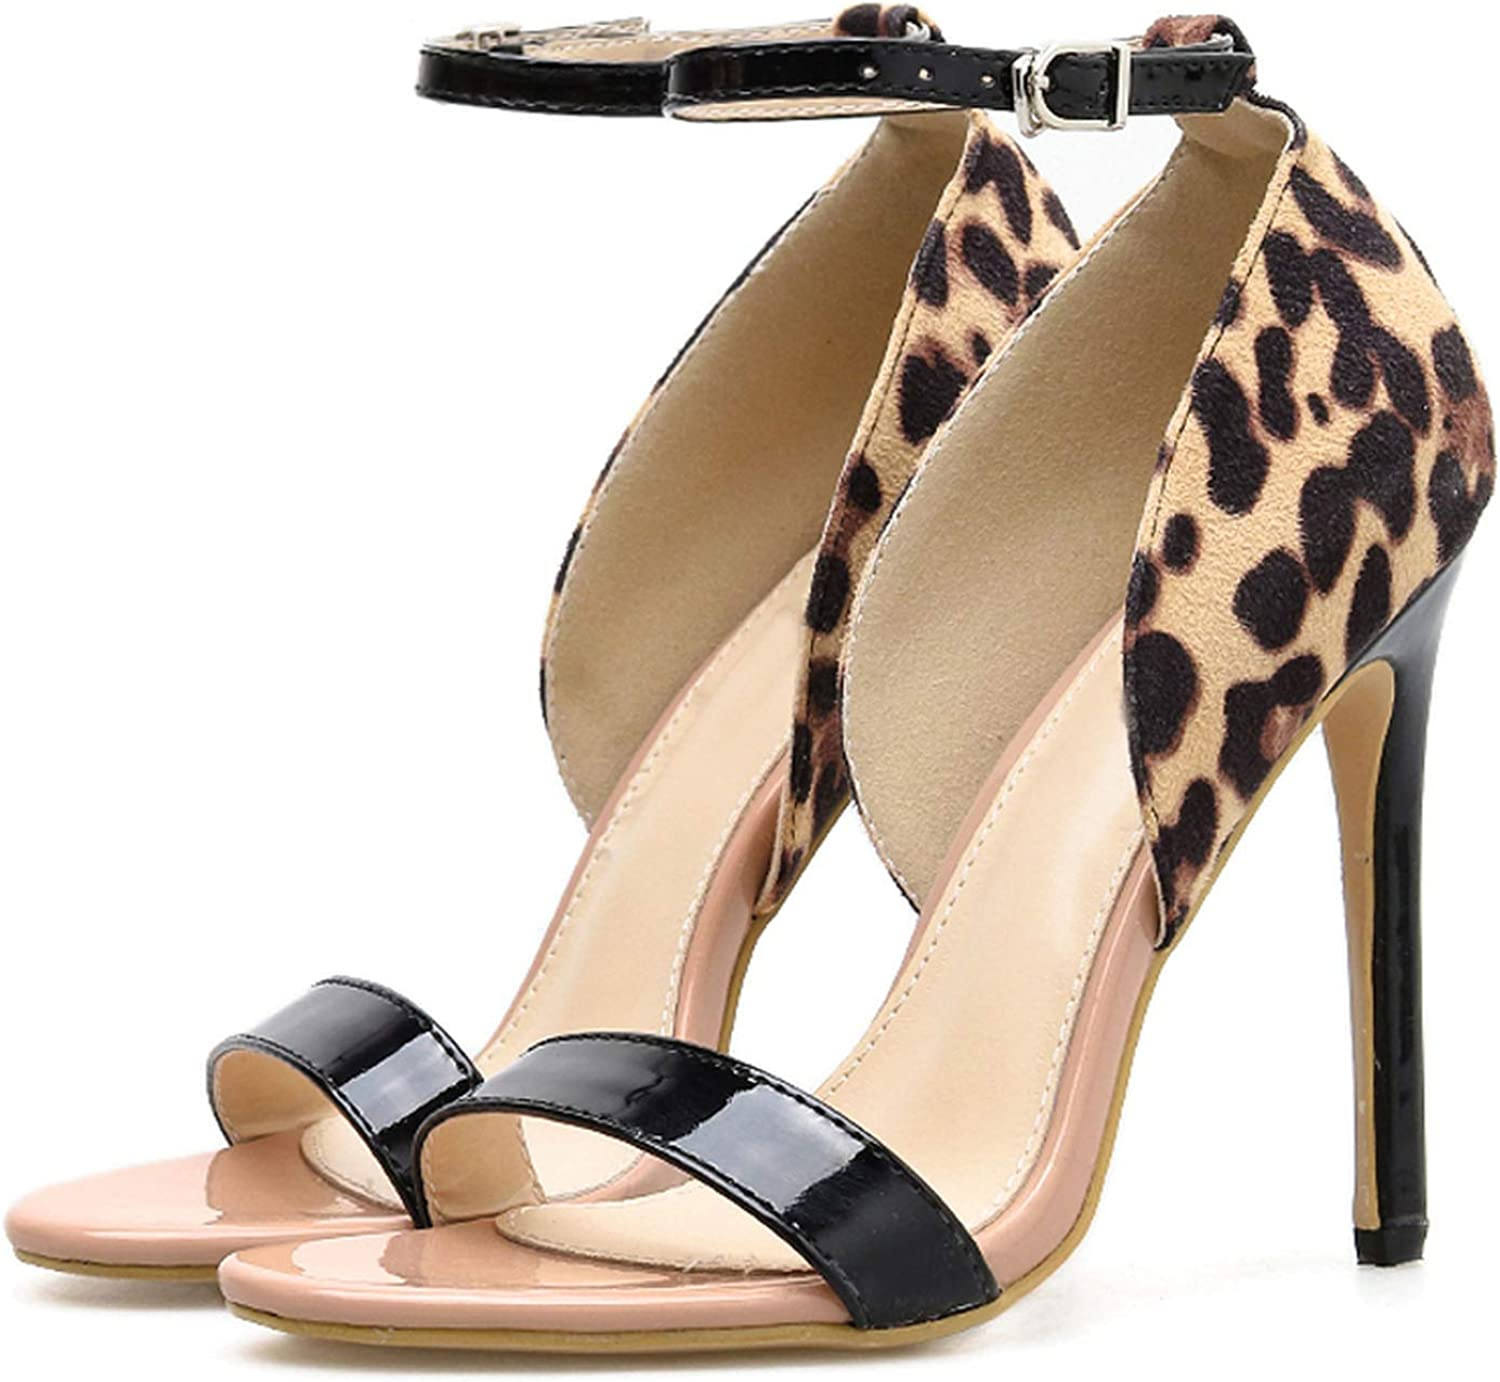 Shocked Tomato Leopard Print High Heels Thin Heels Sandals Ankle Strap Sandals Size 35-41